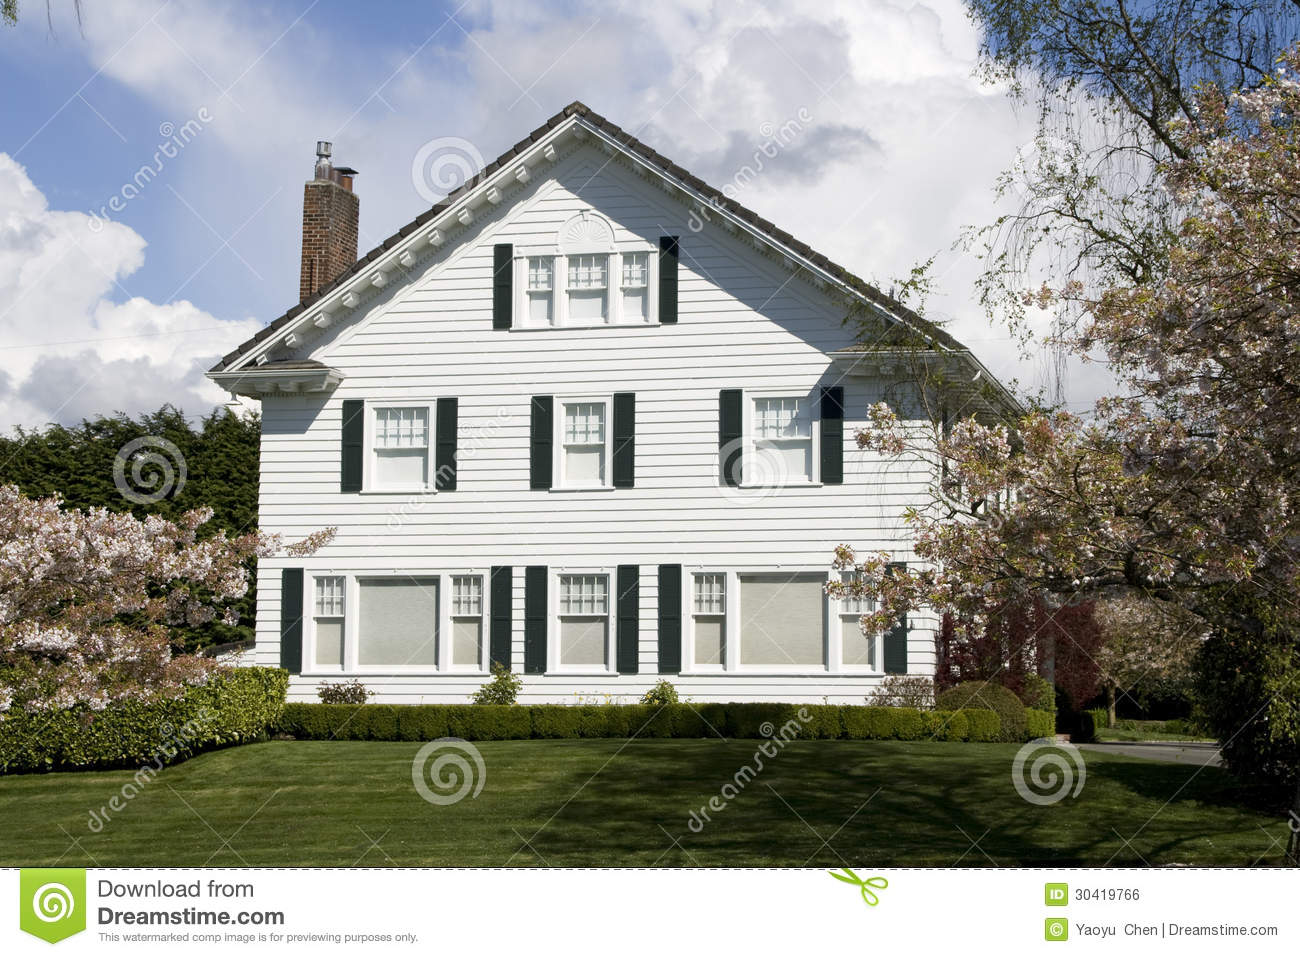 Nice white house with simple design royalty free stock image image 30419766 - Nice and simple design home ...